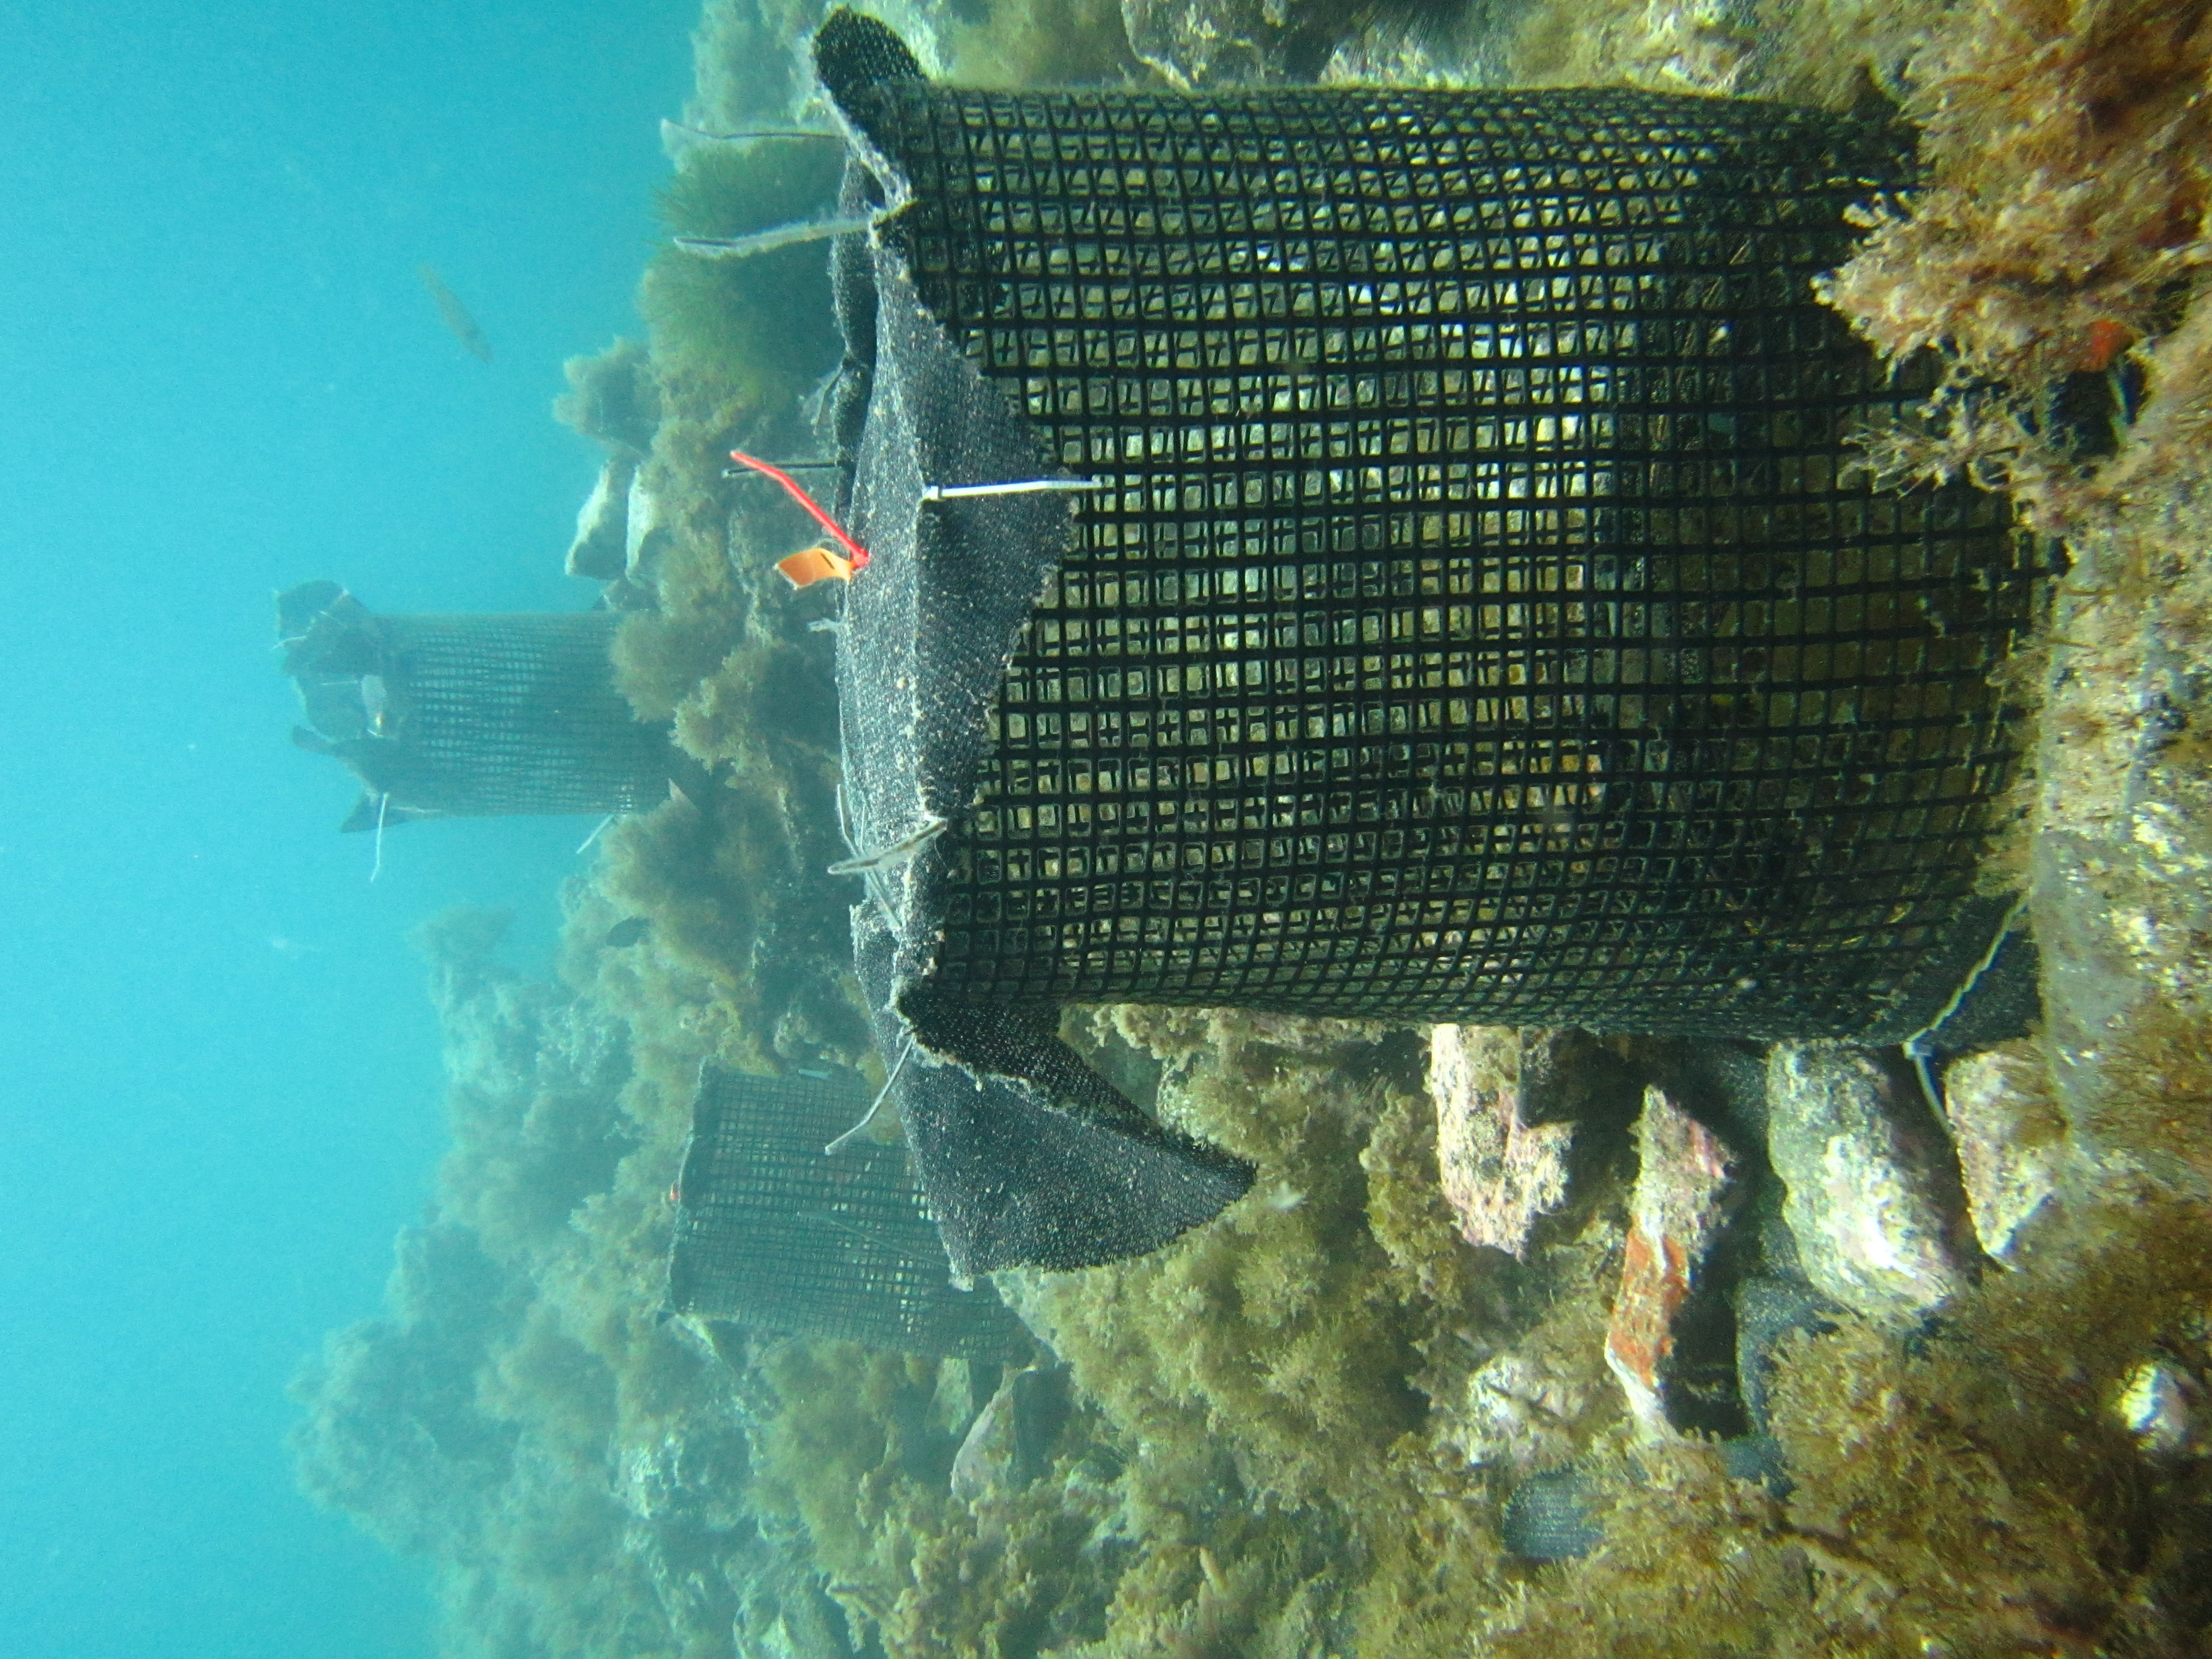 underwater cages with algae on a rocky reef